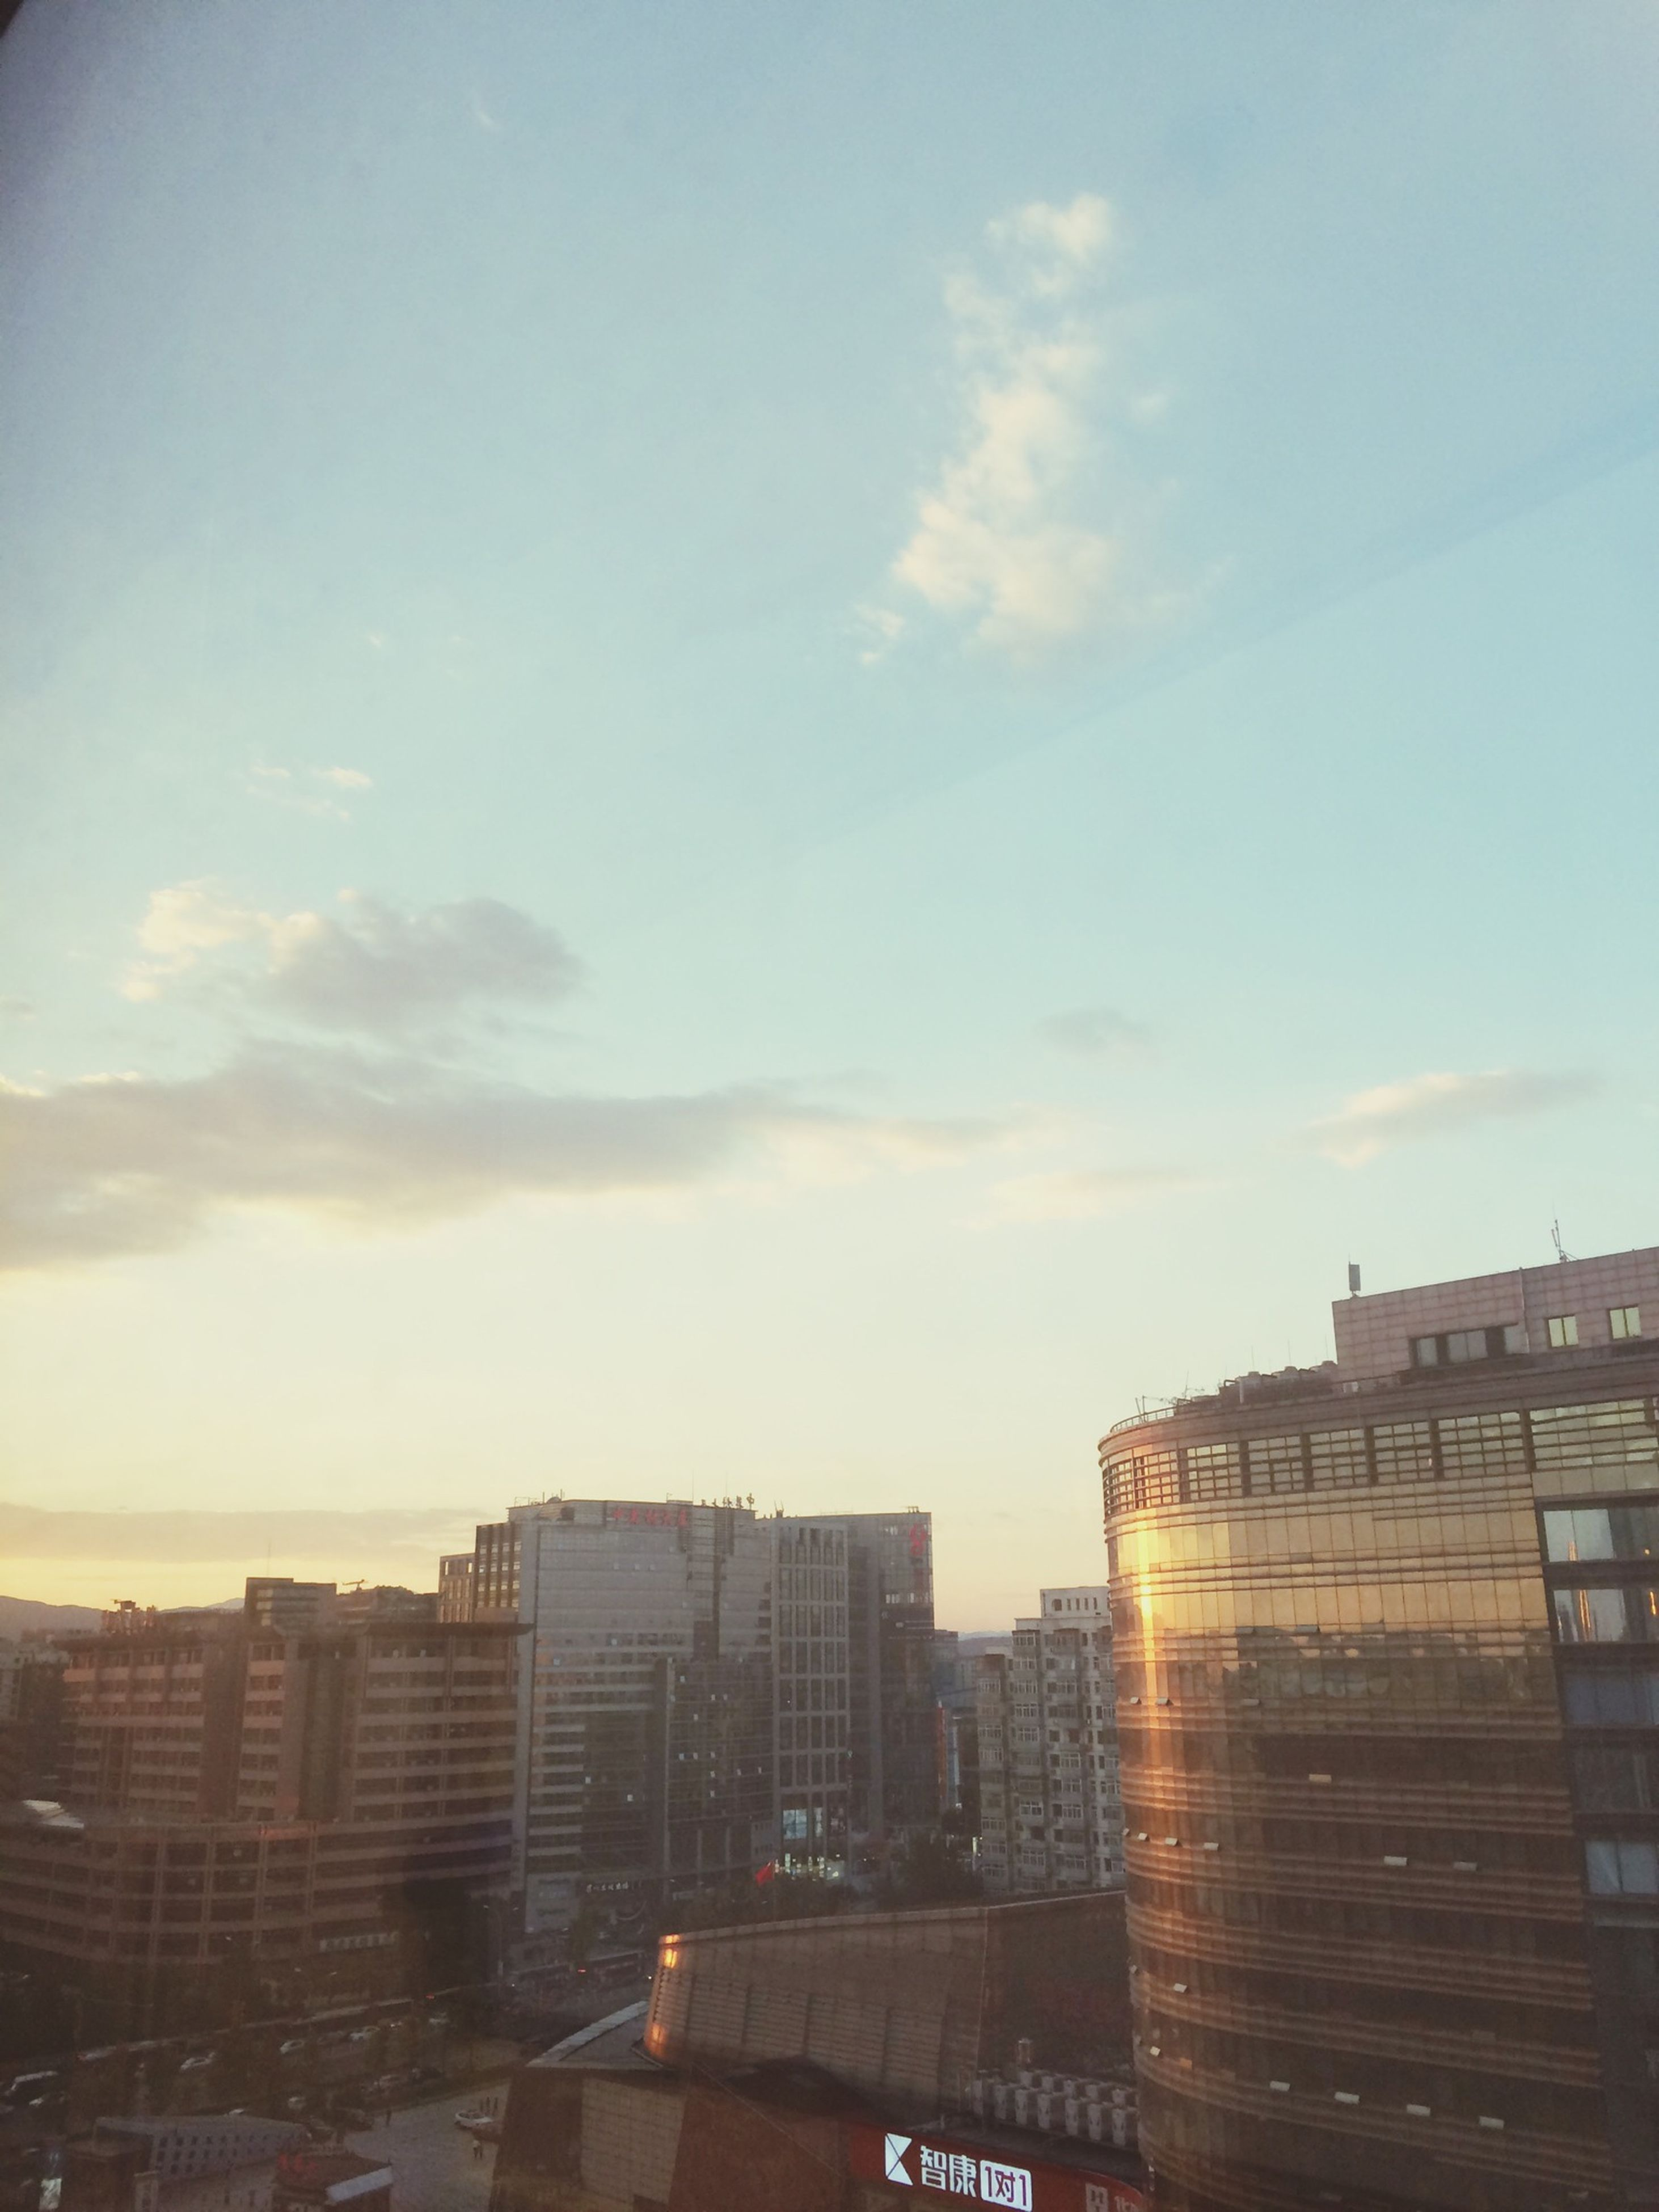 building exterior, architecture, built structure, city, sky, cityscape, residential building, building, sunset, residential structure, cloud - sky, city life, residential district, outdoors, cloud, no people, high angle view, low angle view, sunlight, modern